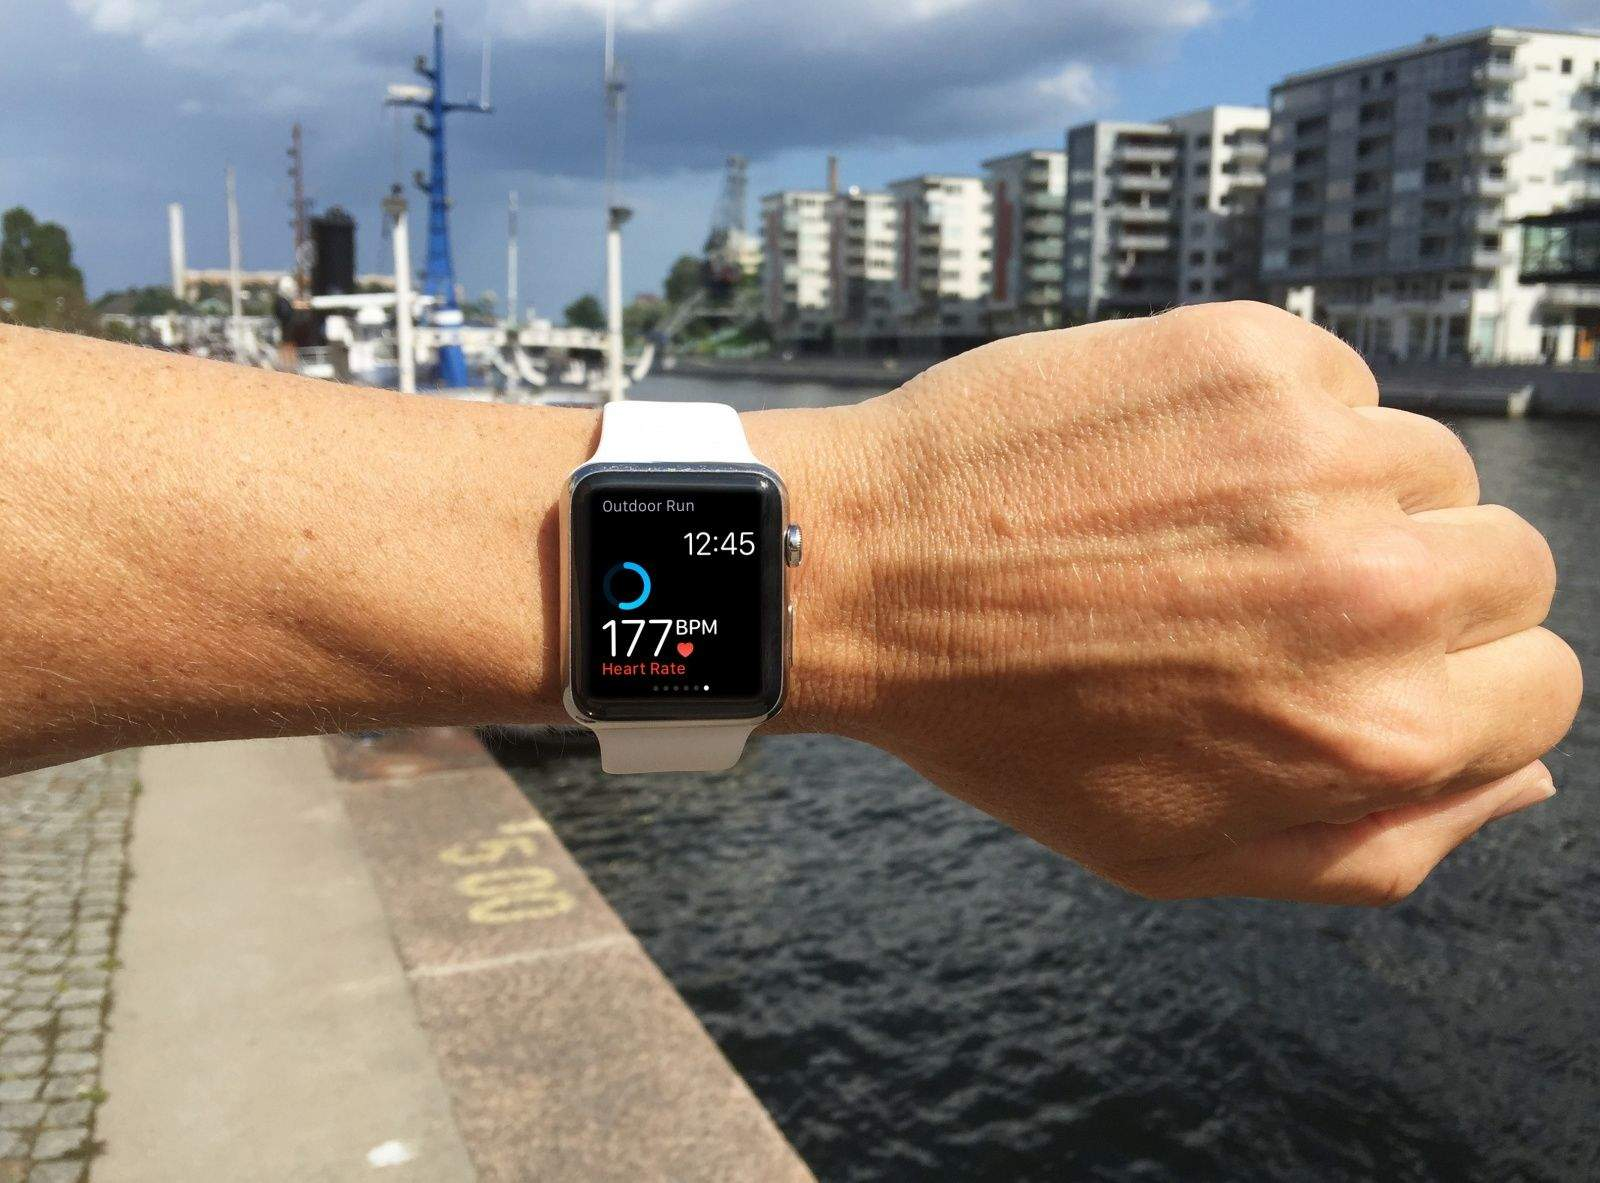 Use the heart rate sensor to find your race pace.